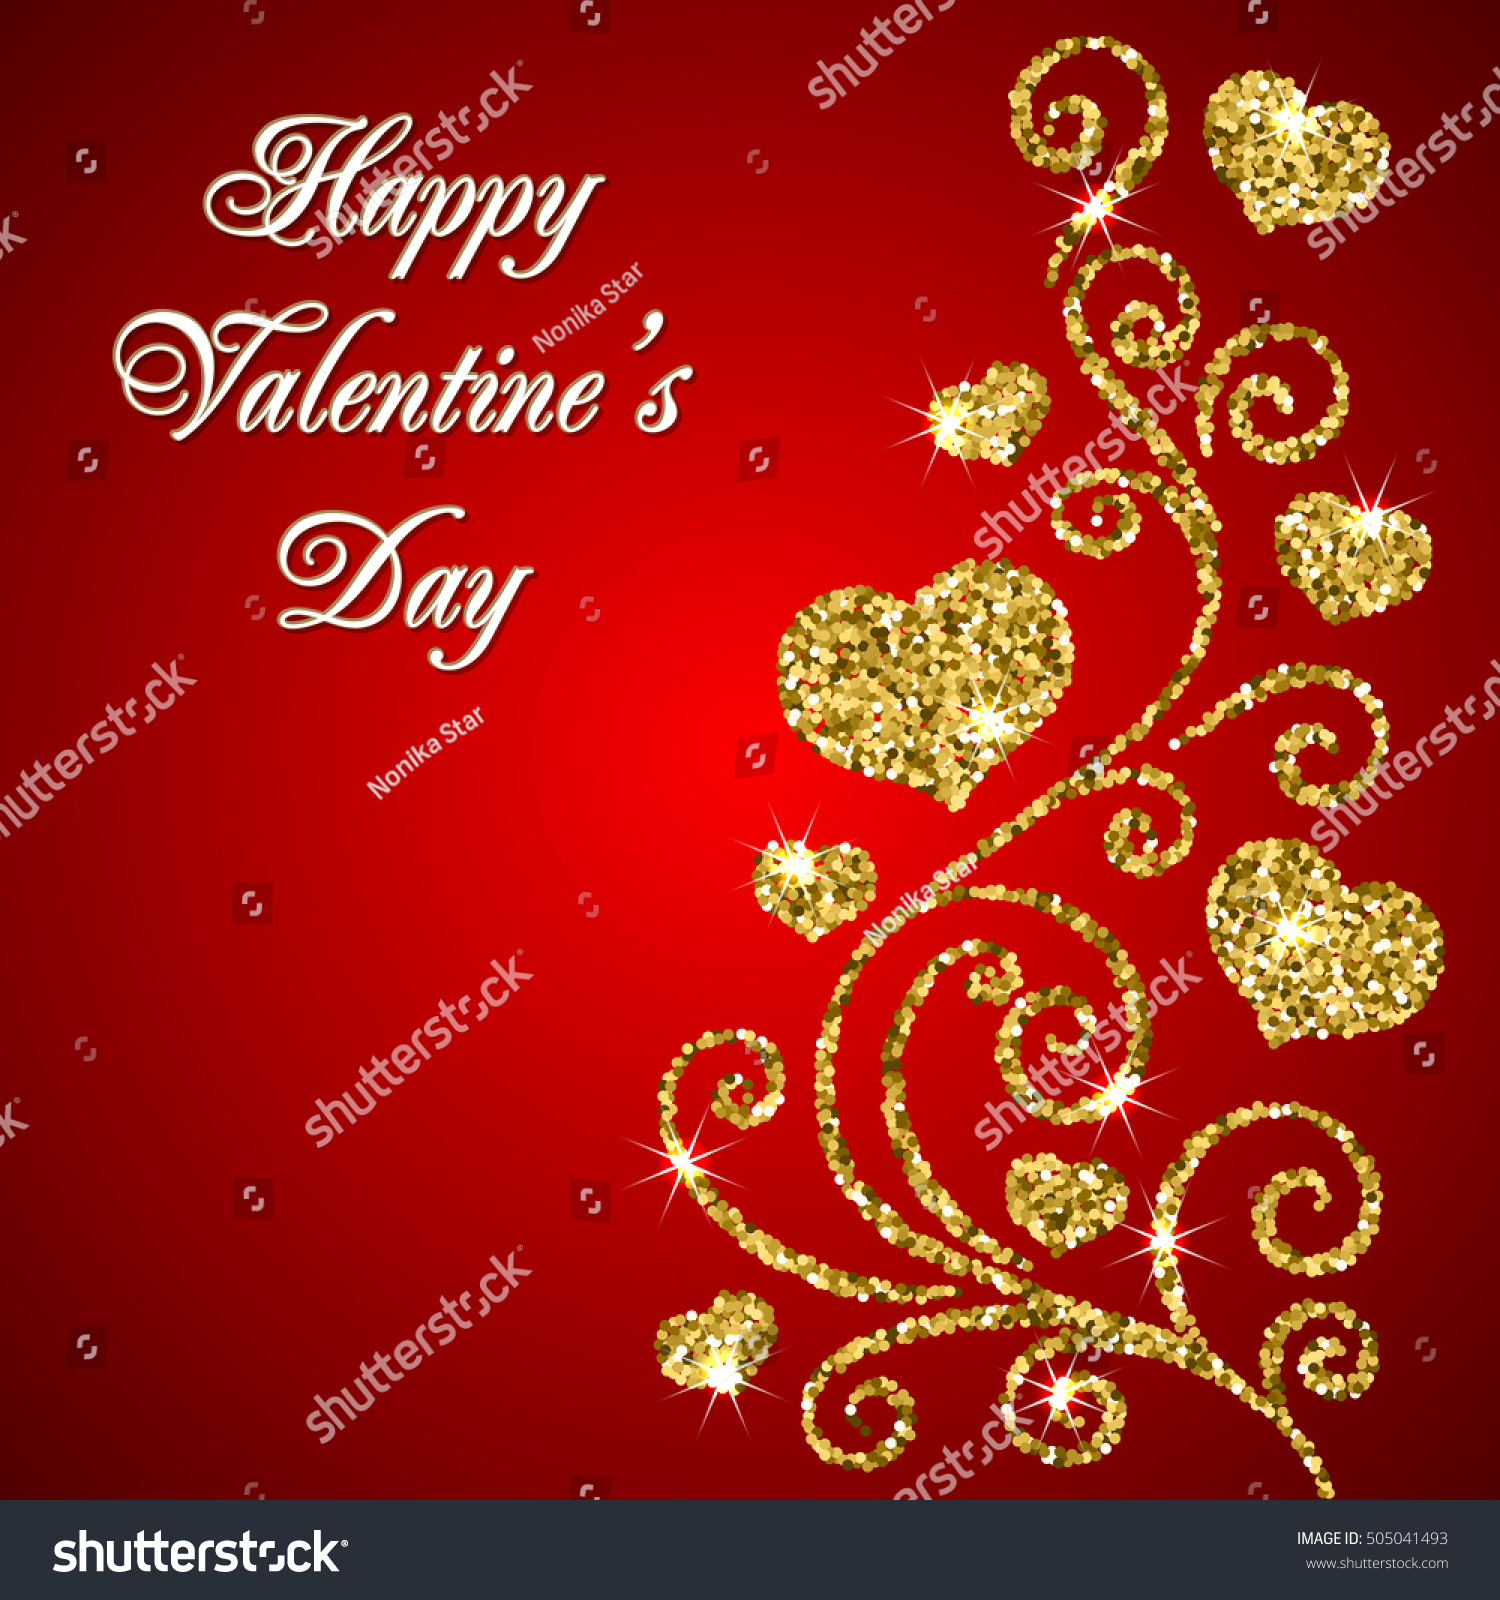 valentines day card glitter ornament happy stock illustration happy valentines day text